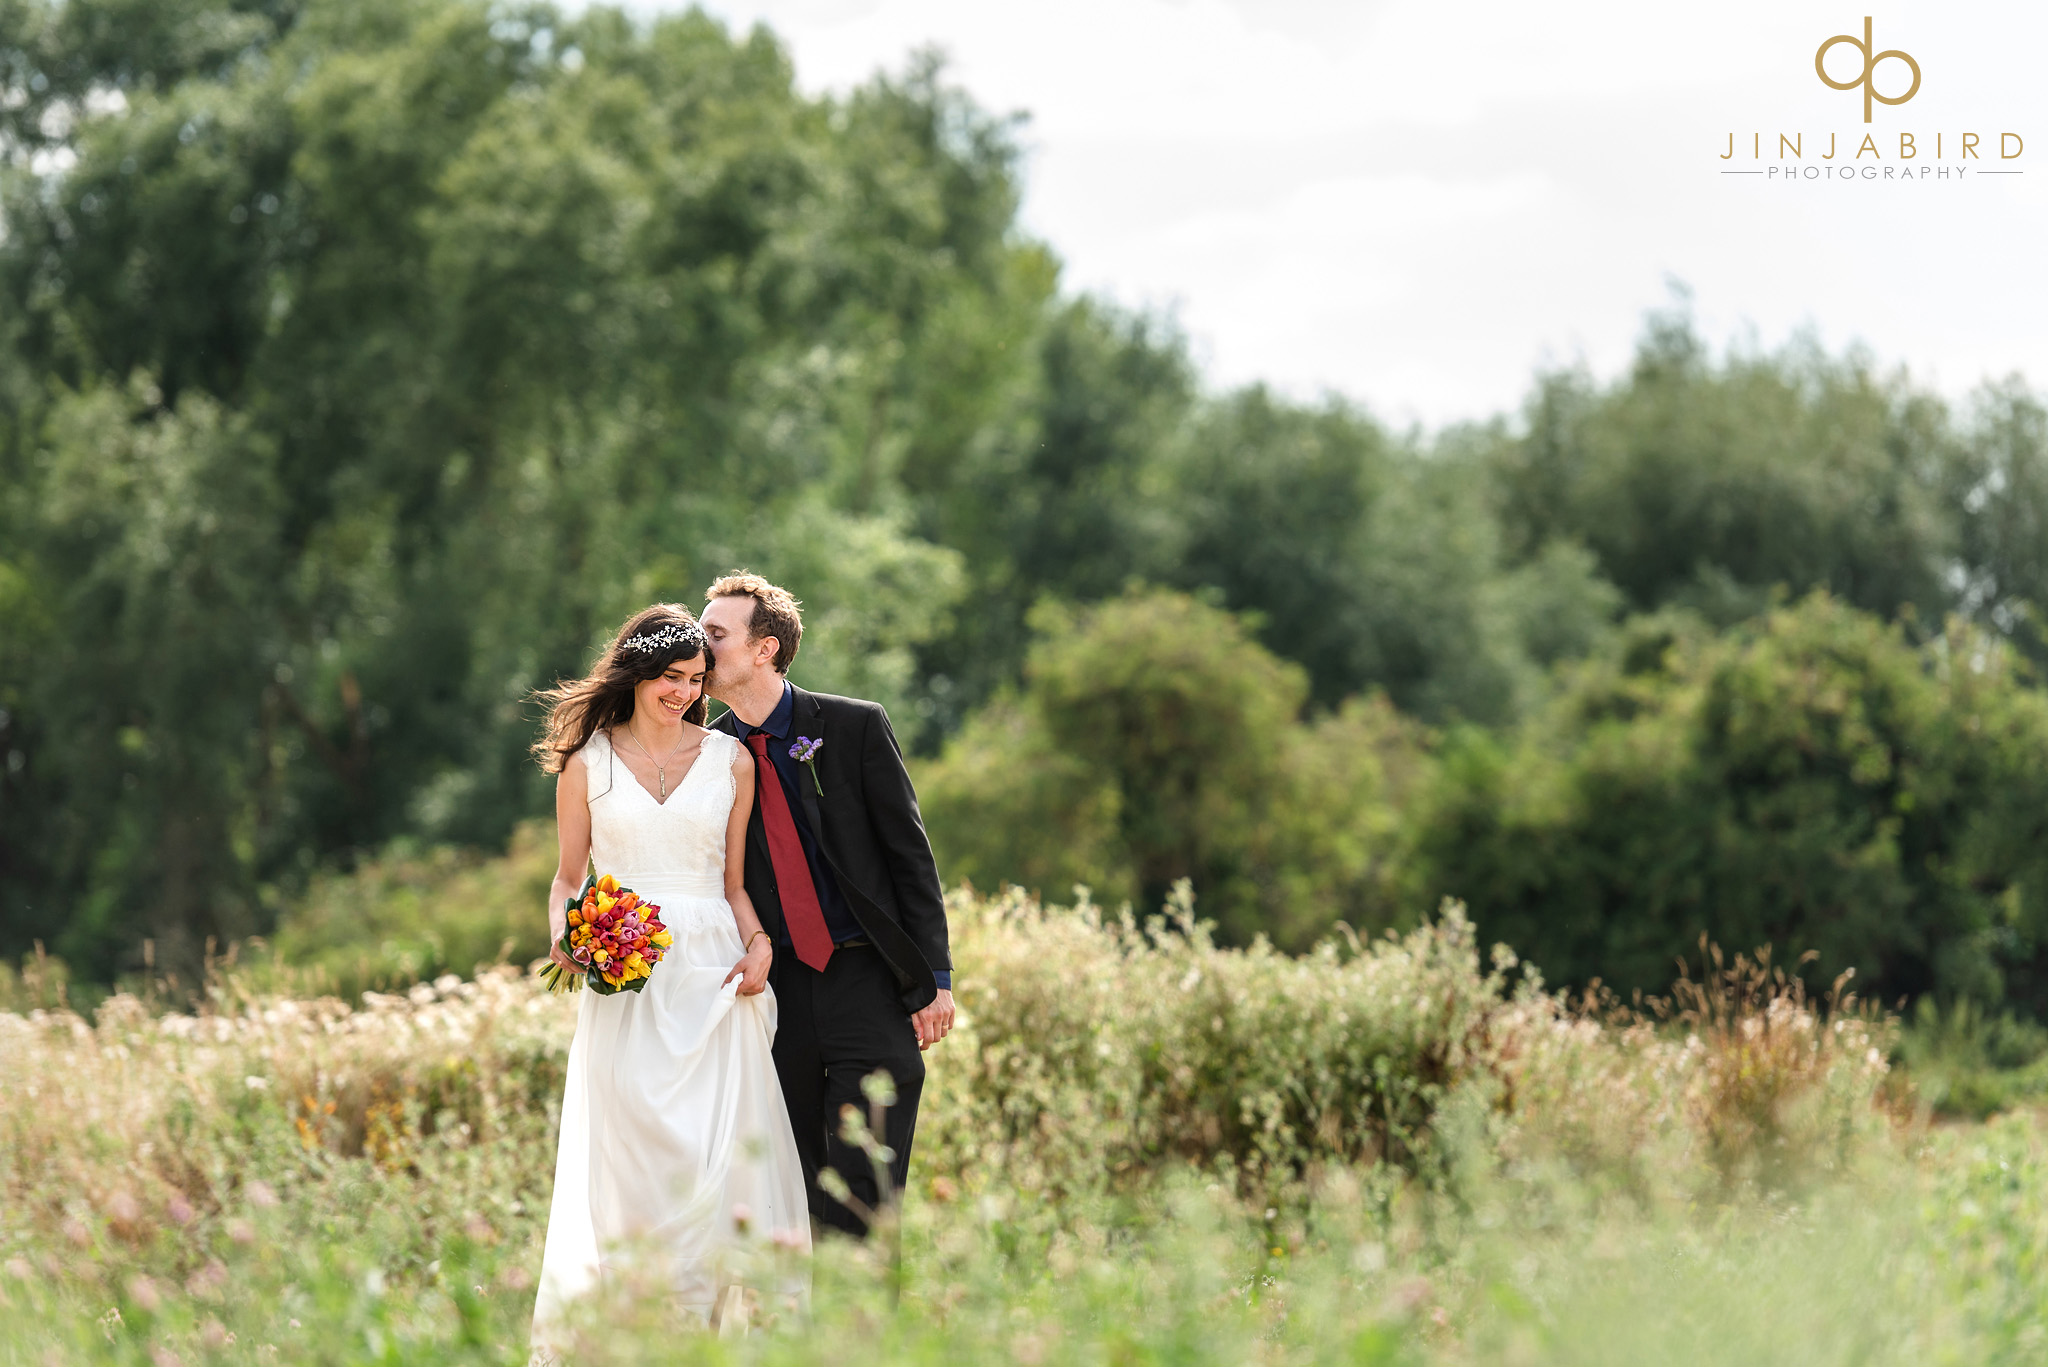 reportage wedding photography cambridge